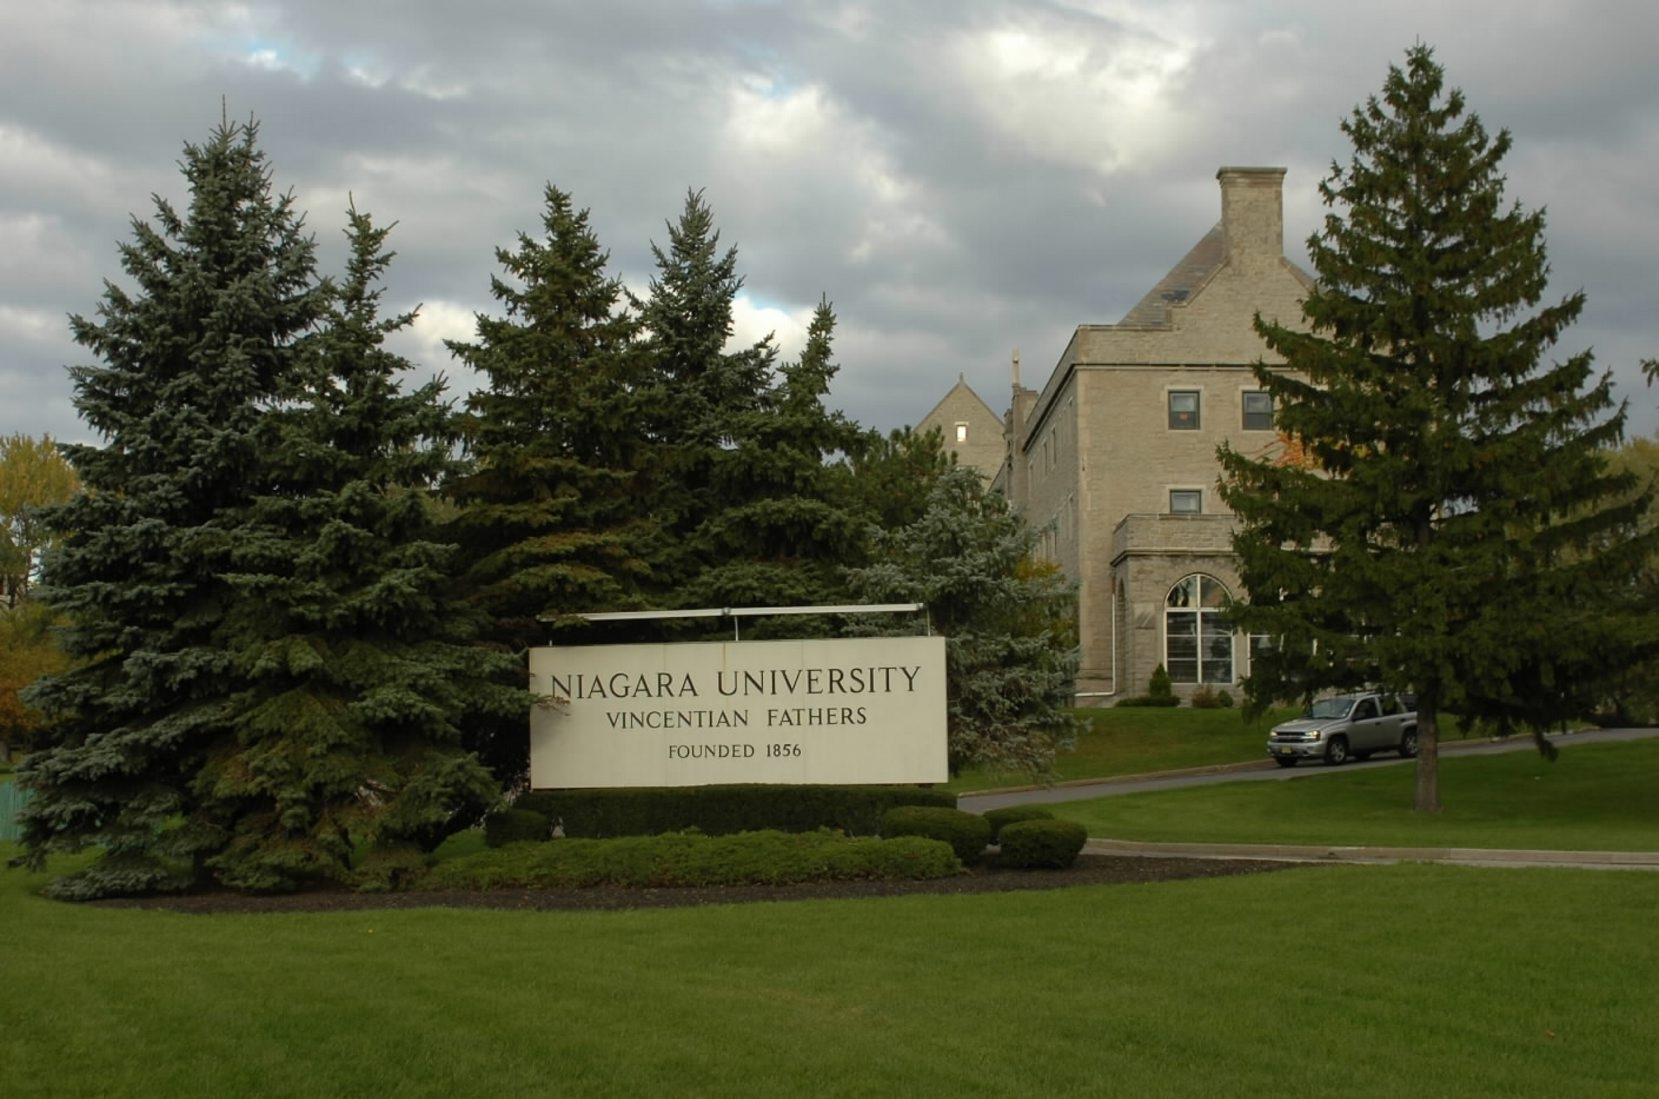 Niagara University. (News file photo)